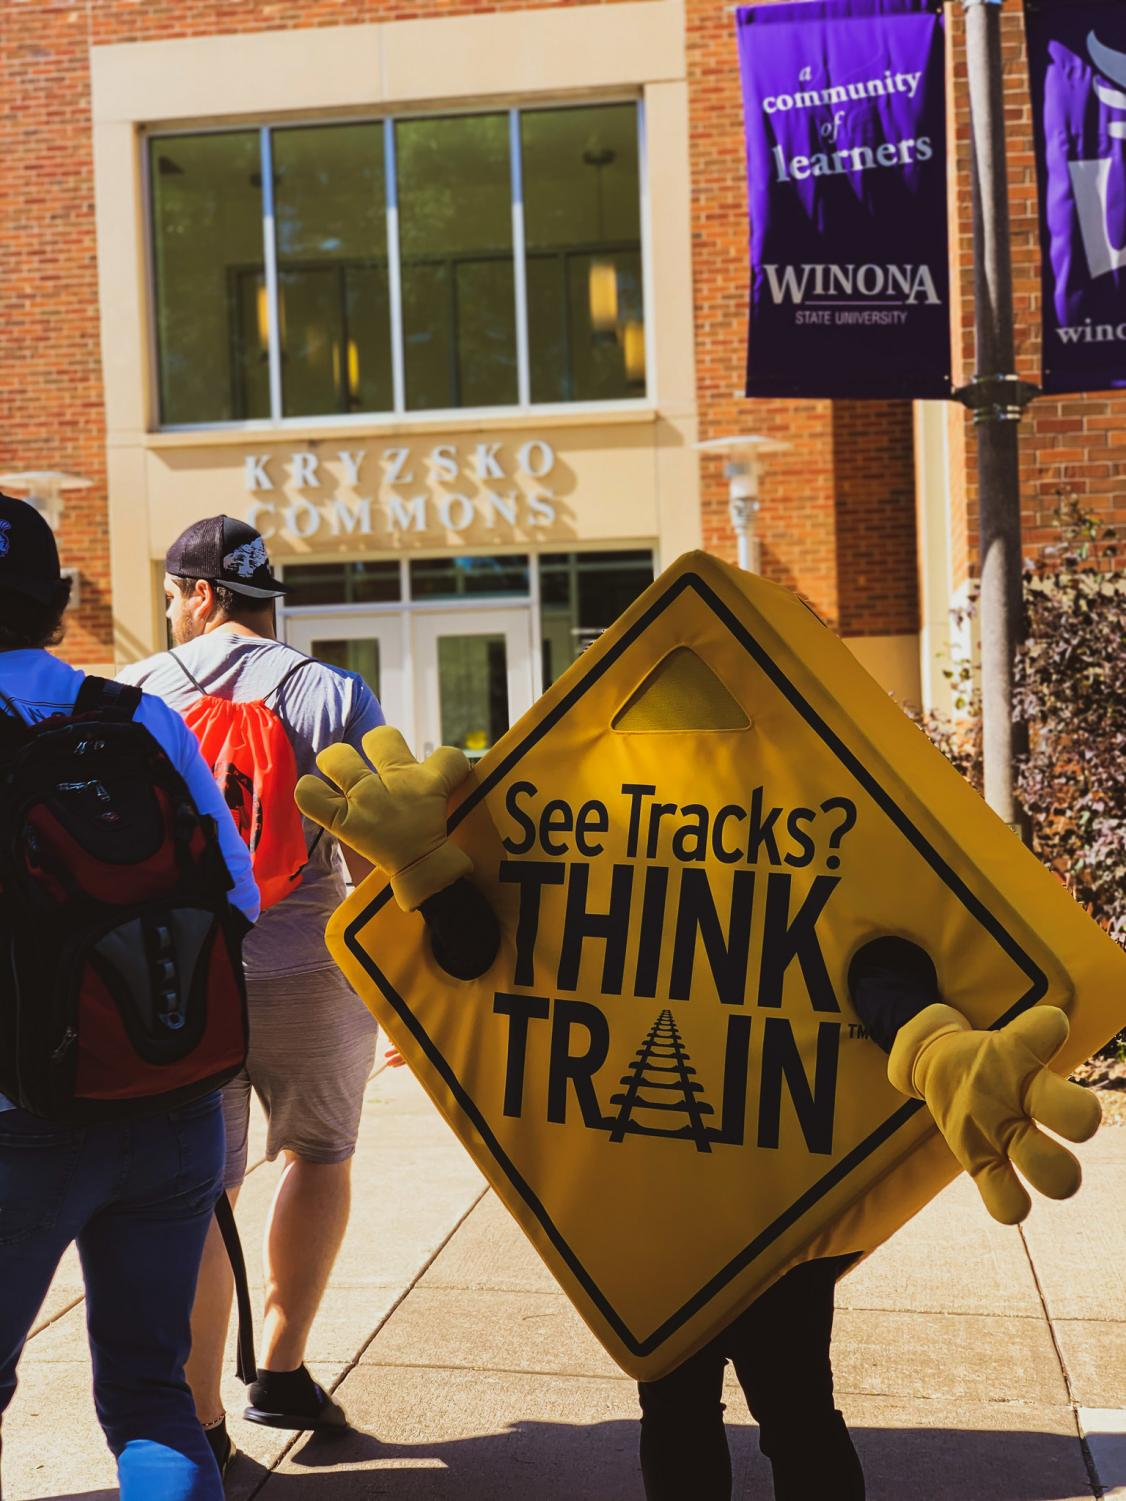 """Cheryl Cummings, the head of Minnesota operations, promotes rail safety during the """"Operation Life Saver Minnesota"""" event outside of Kryzsko Commons on Wednesday, Sept. 25."""